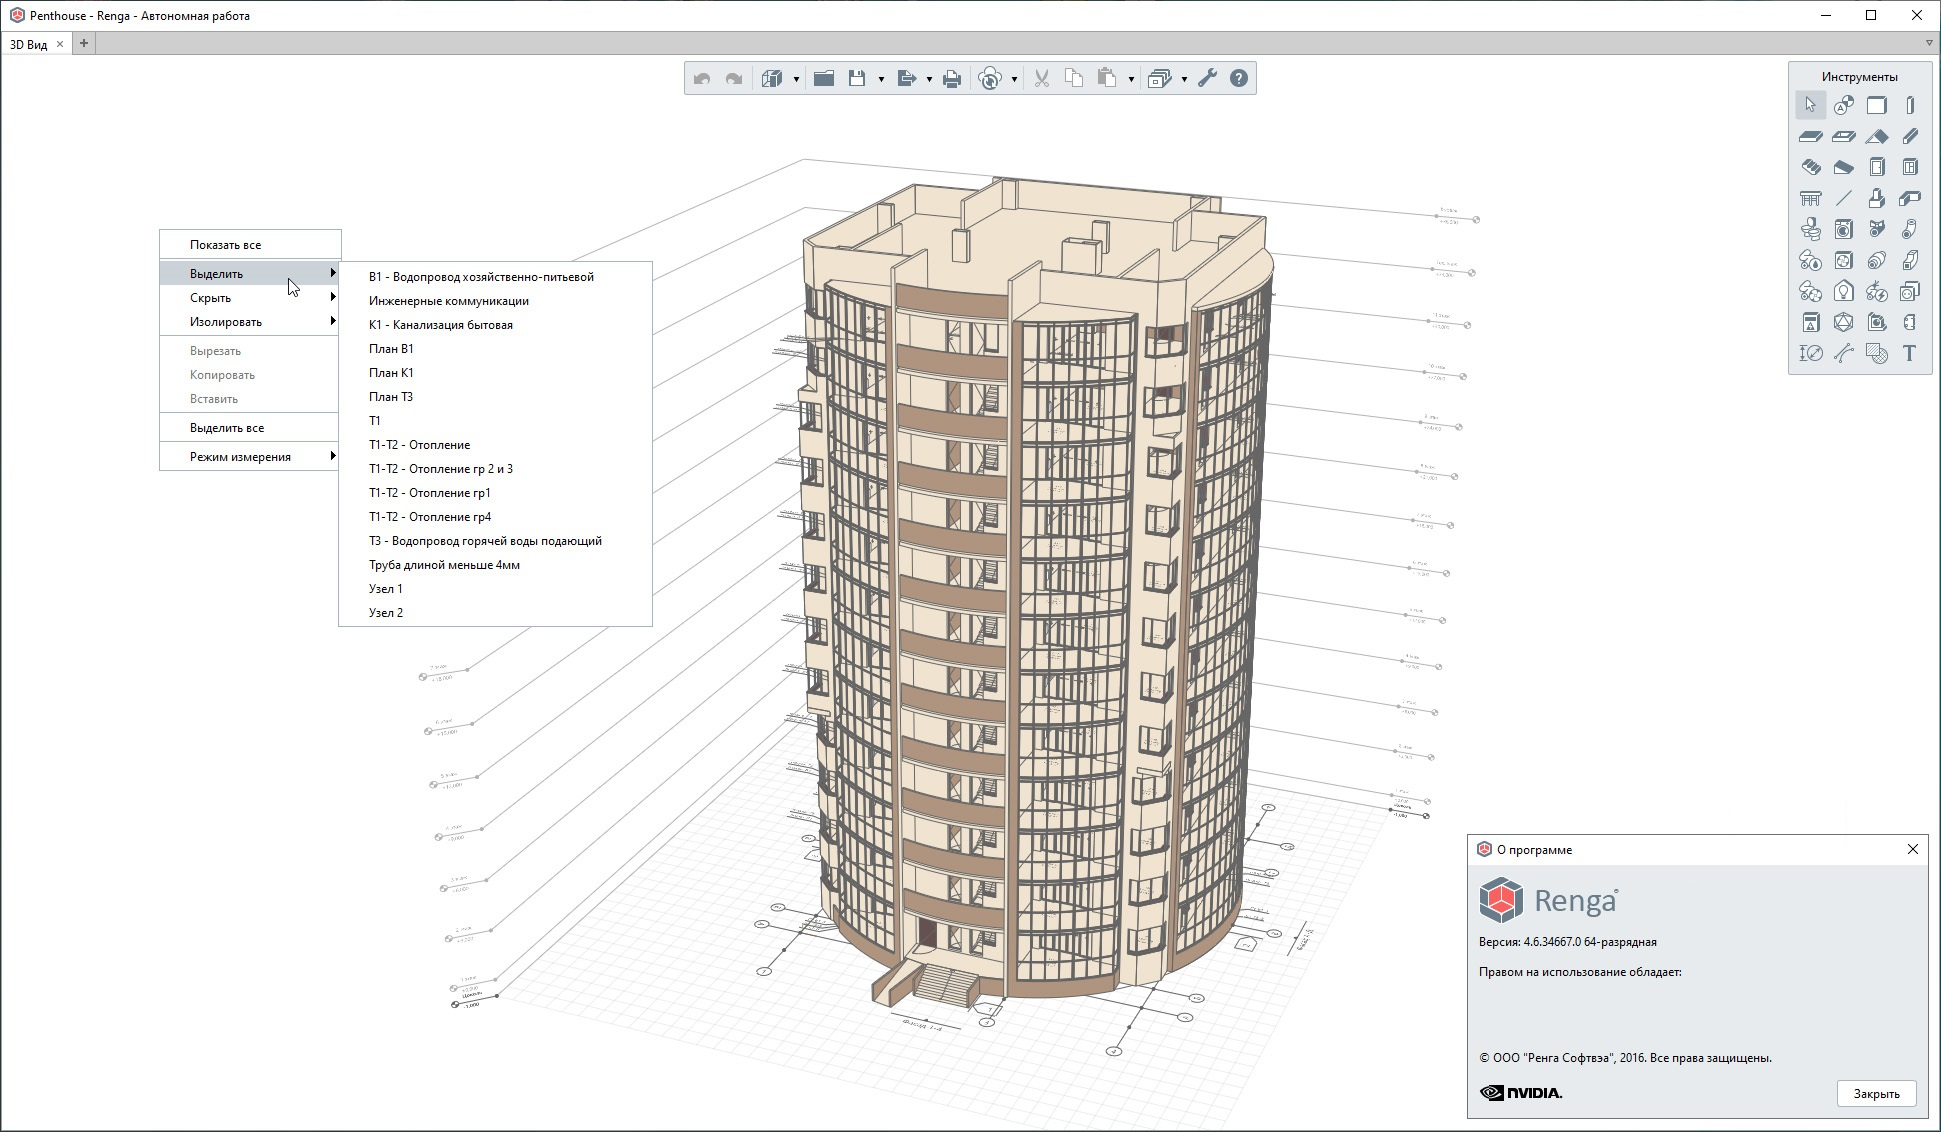 Working with Renga Architecture 4.6.34667.0 full license